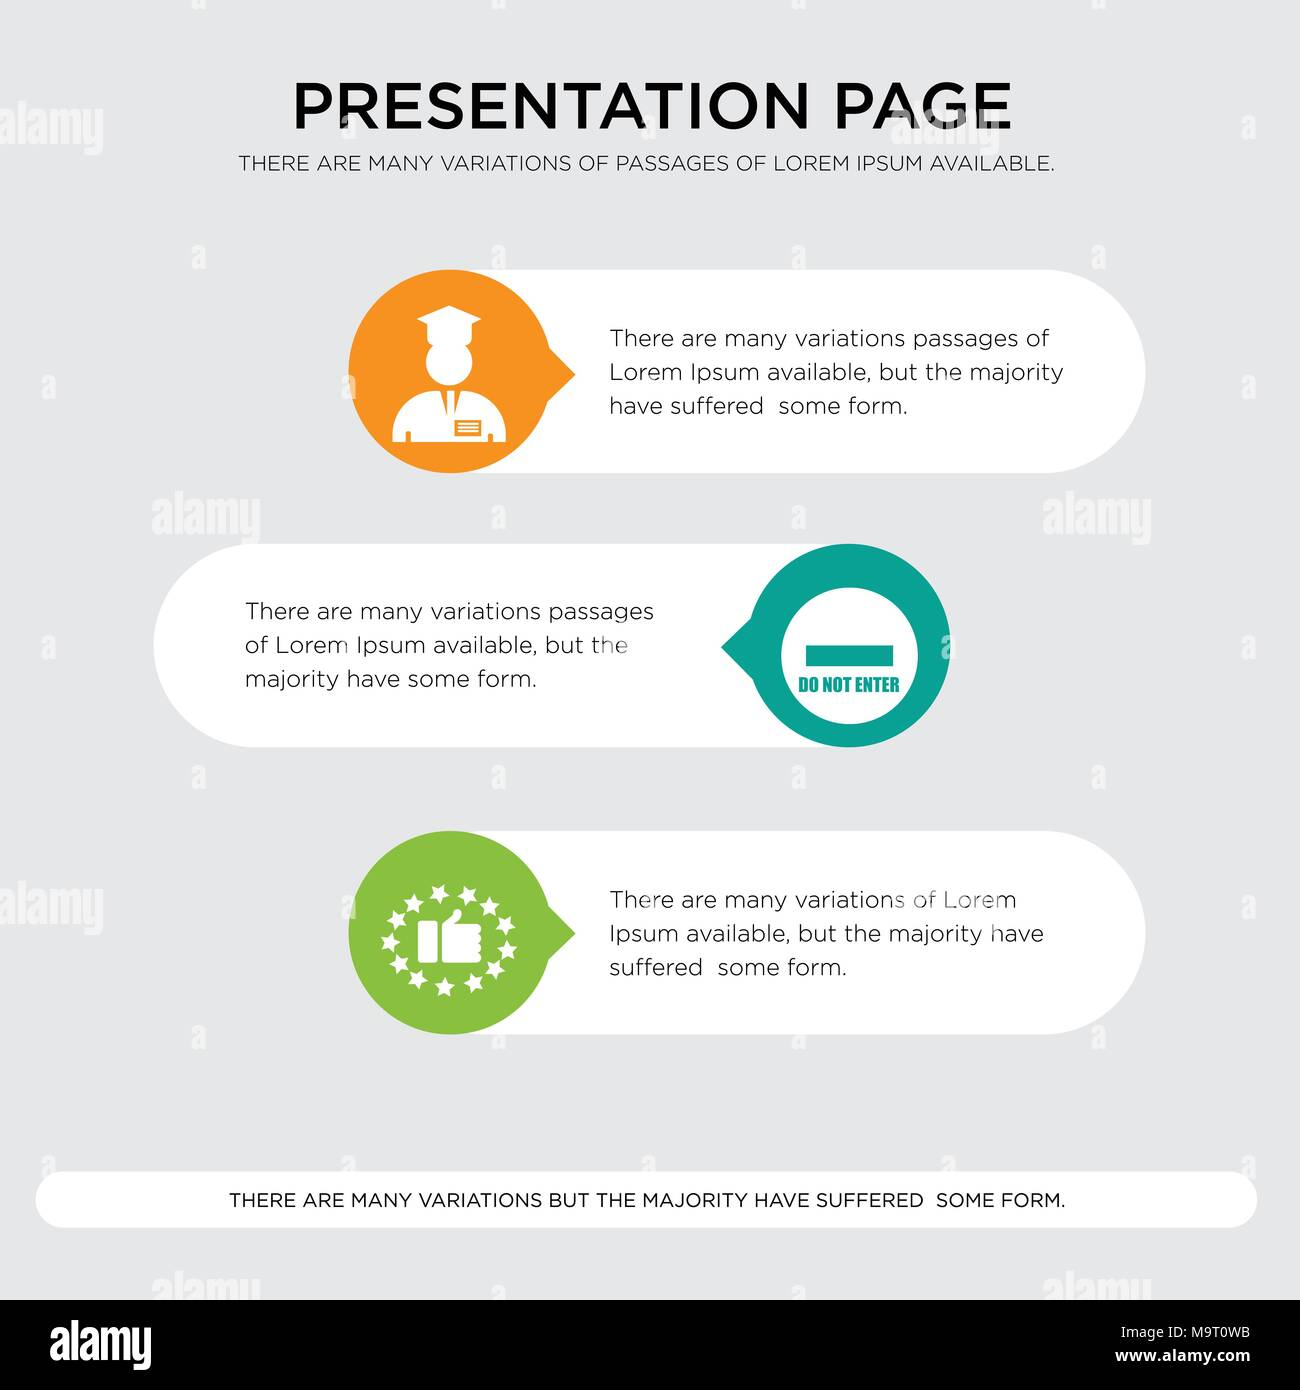 satisfied customer, do not enter, internship presentation design template in orange, green, yellow colors with horizontal and rounded shapes - Stock Image